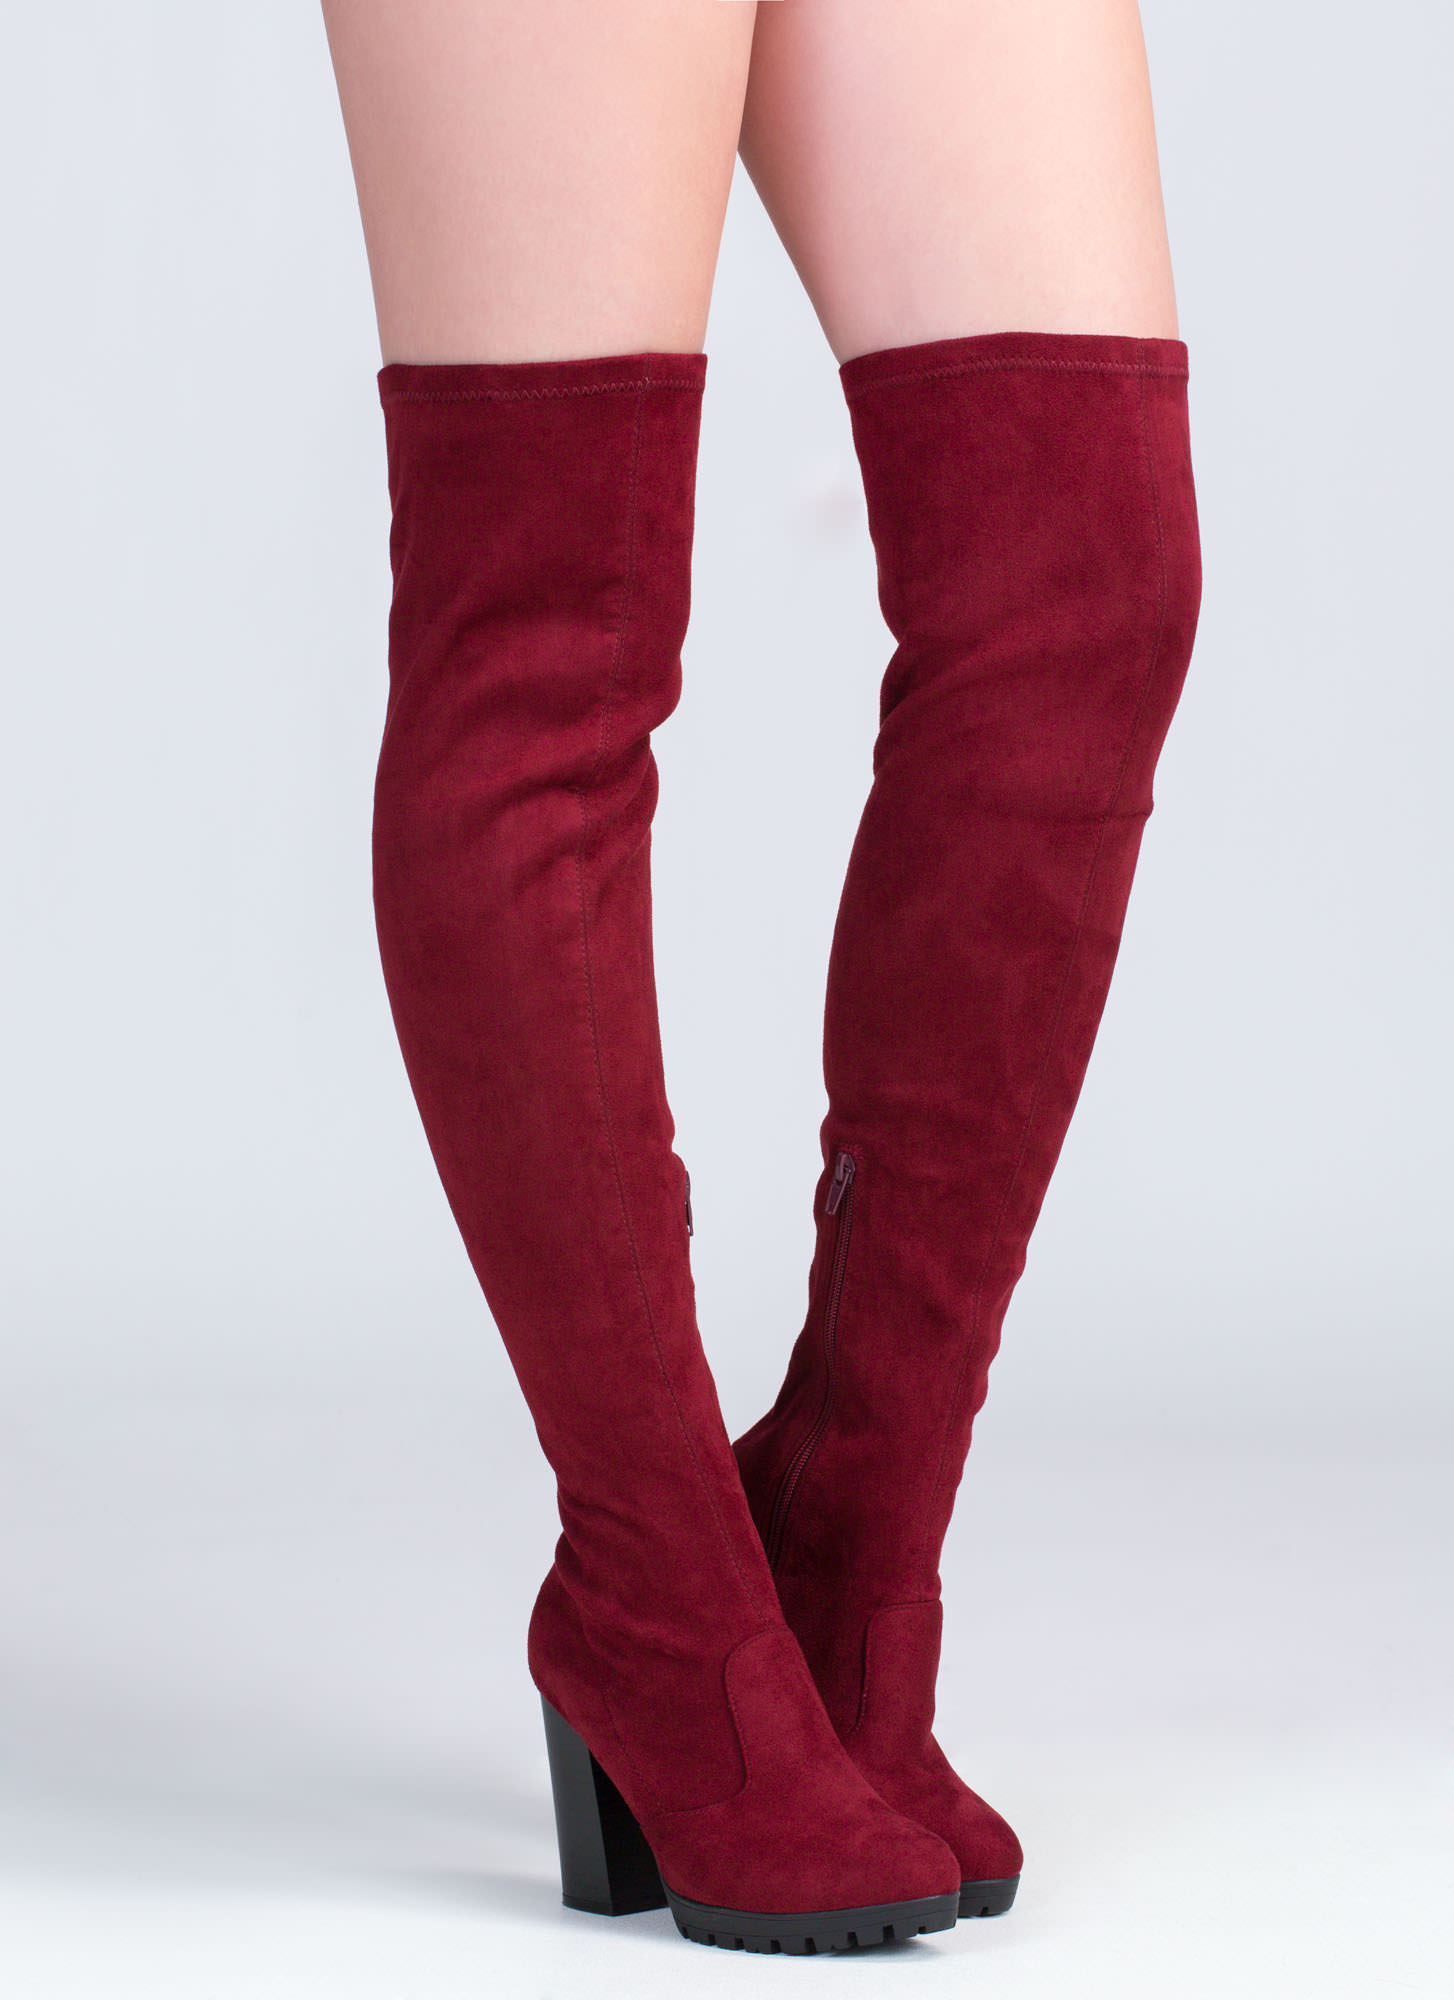 Red Over The Knee Boots jJjoiifJ